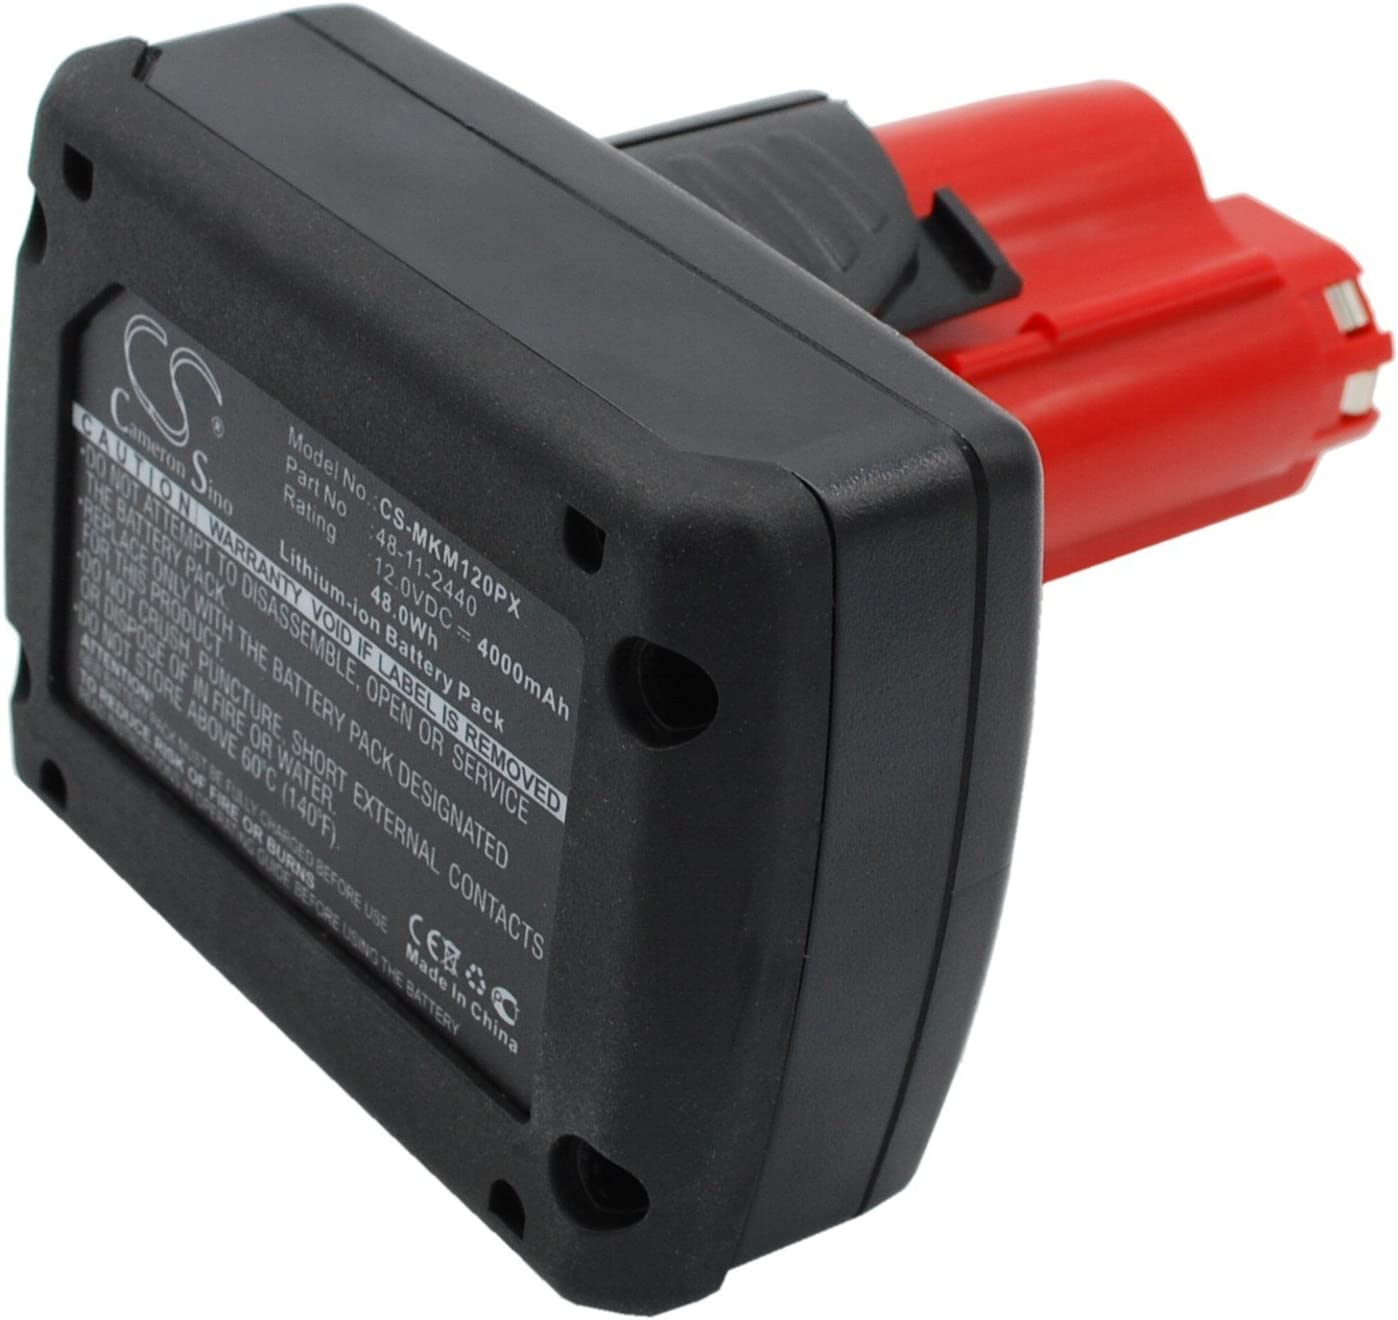 Replacement Battery for M12 XC 4.0 NEW Part FM fits N HZ Today's only C12